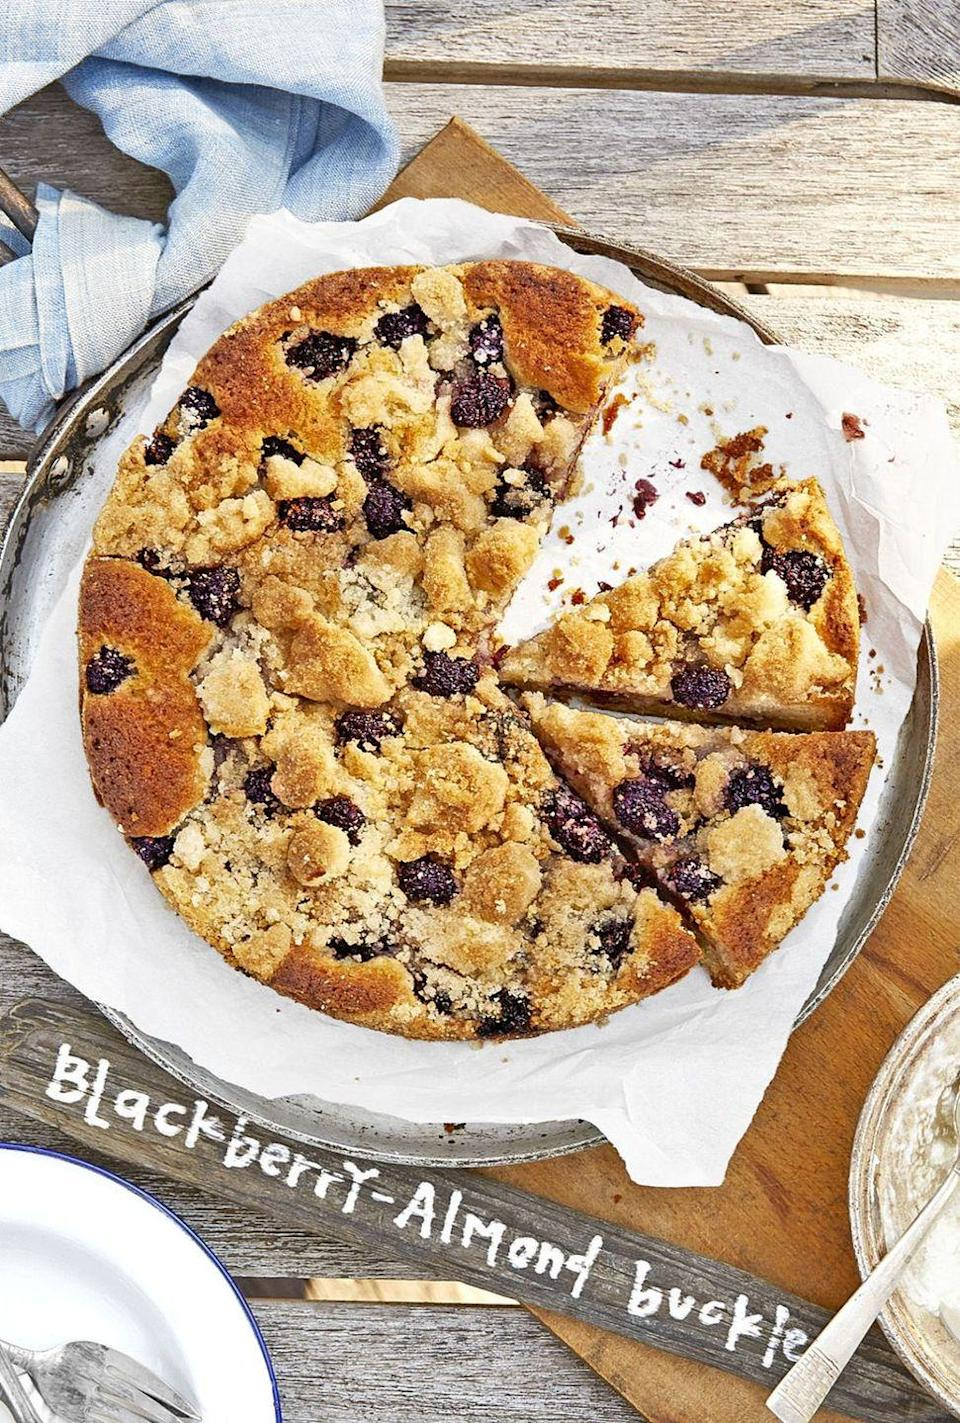 "<p>Serve each slice of this buckle with a heaping scoop of <a href=""https://www.countryliving.com/food-drinks/recipes/a3404/vanilla-ice-cream-recipe-clv0610/"" rel=""nofollow noopener"" target=""_blank"" data-ylk=""slk:vanilla ice cream"" class=""link rapid-noclick-resp"">vanilla ice cream</a>.</p><p><strong><a href=""https://www.countryliving.com/food-drinks/recipes/a43559/blackberry-almond-buckle-recipe/"" rel=""nofollow noopener"" target=""_blank"" data-ylk=""slk:Get the recipe"" class=""link rapid-noclick-resp"">Get the recipe</a>.</strong></p>"